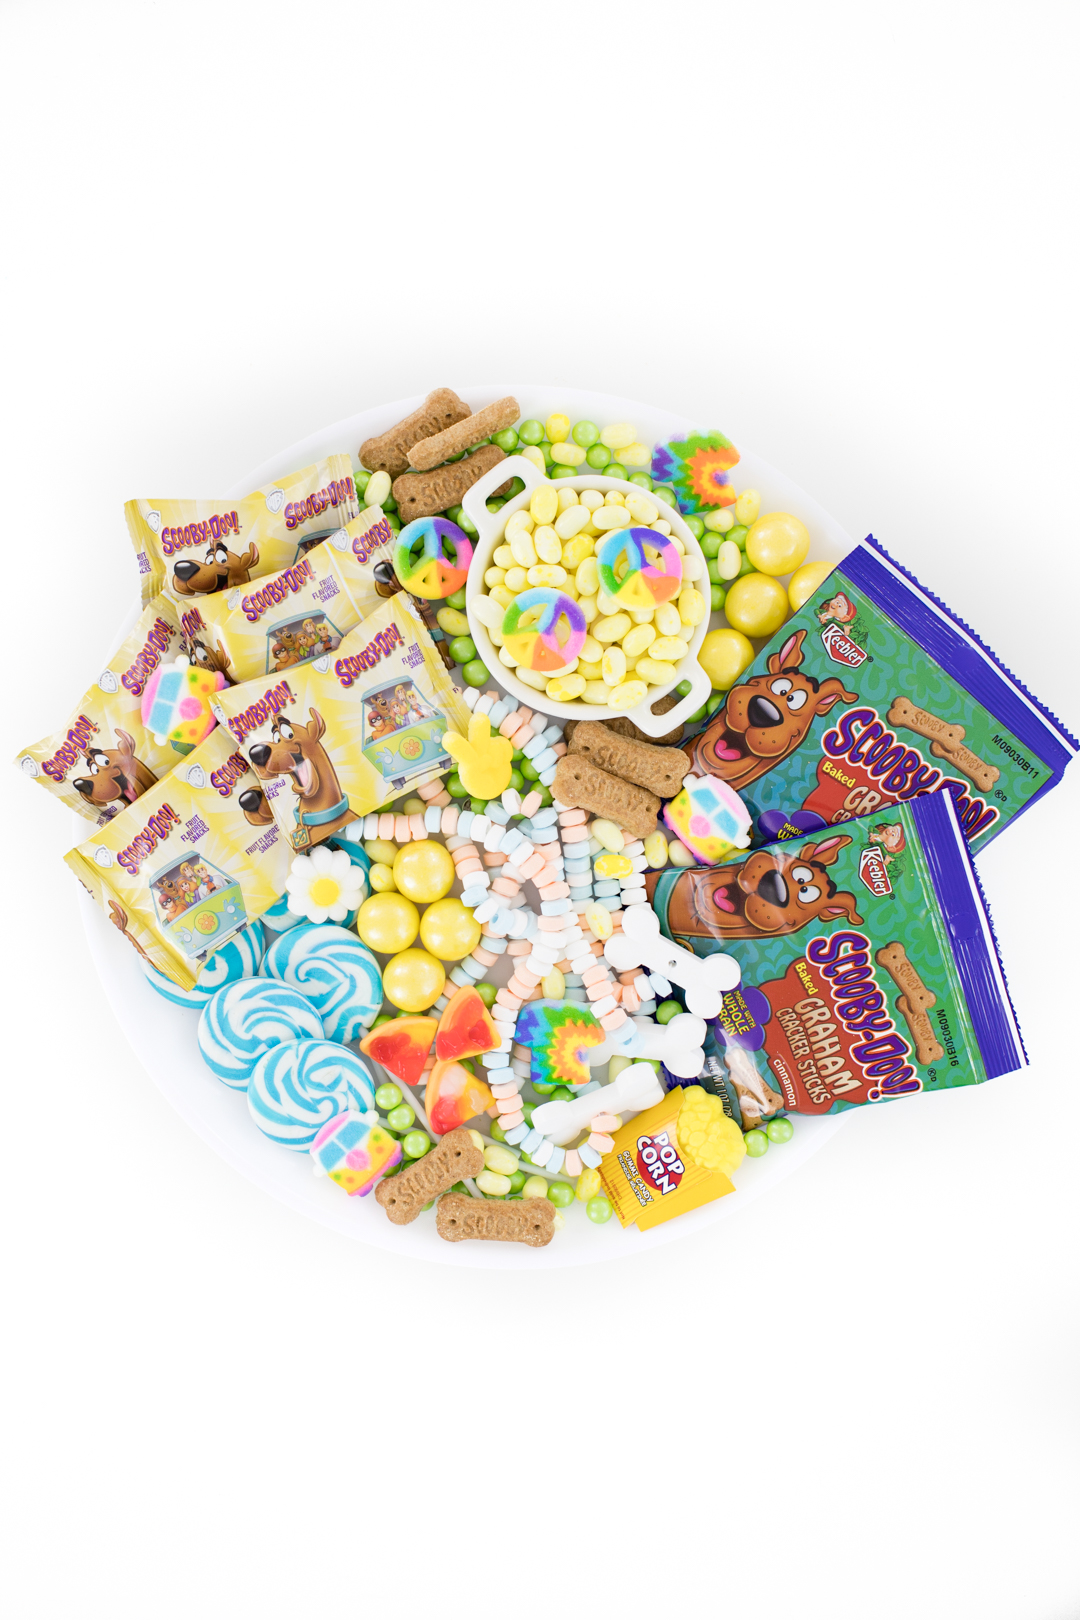 candy tray with Scooby Doo snacks